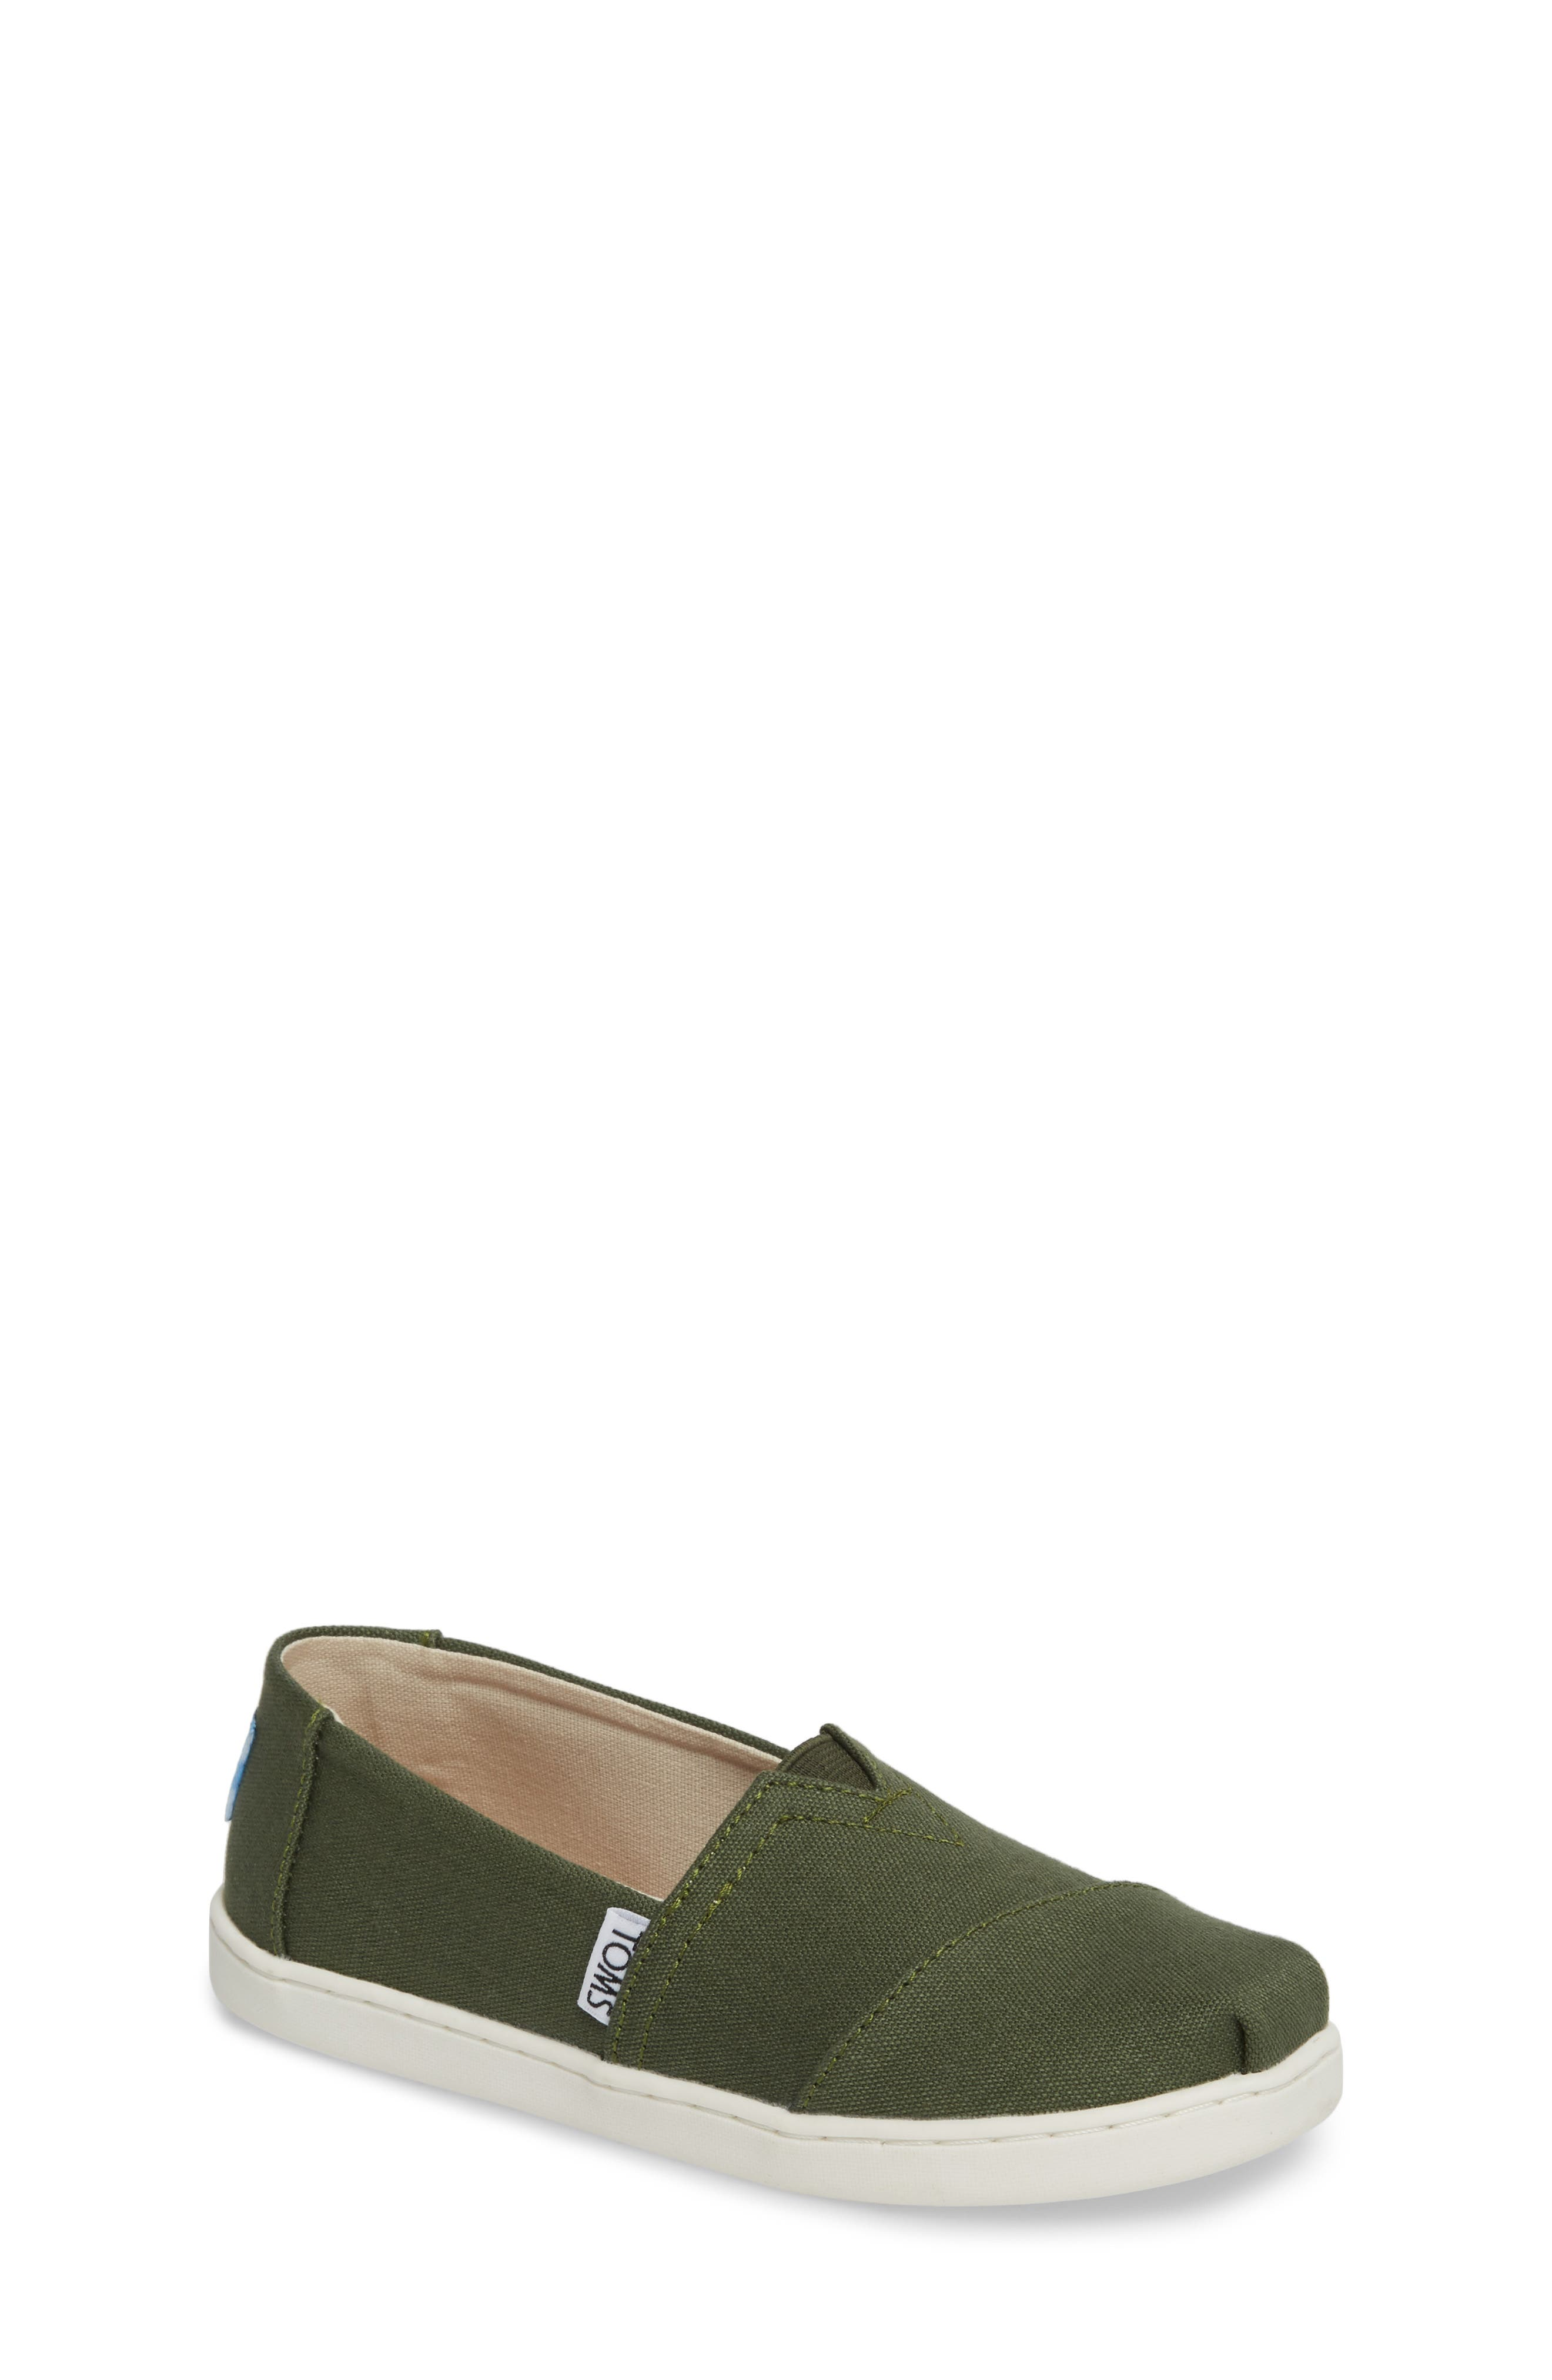 Heritage Canvas Slip-On,                         Main,                         color, 310